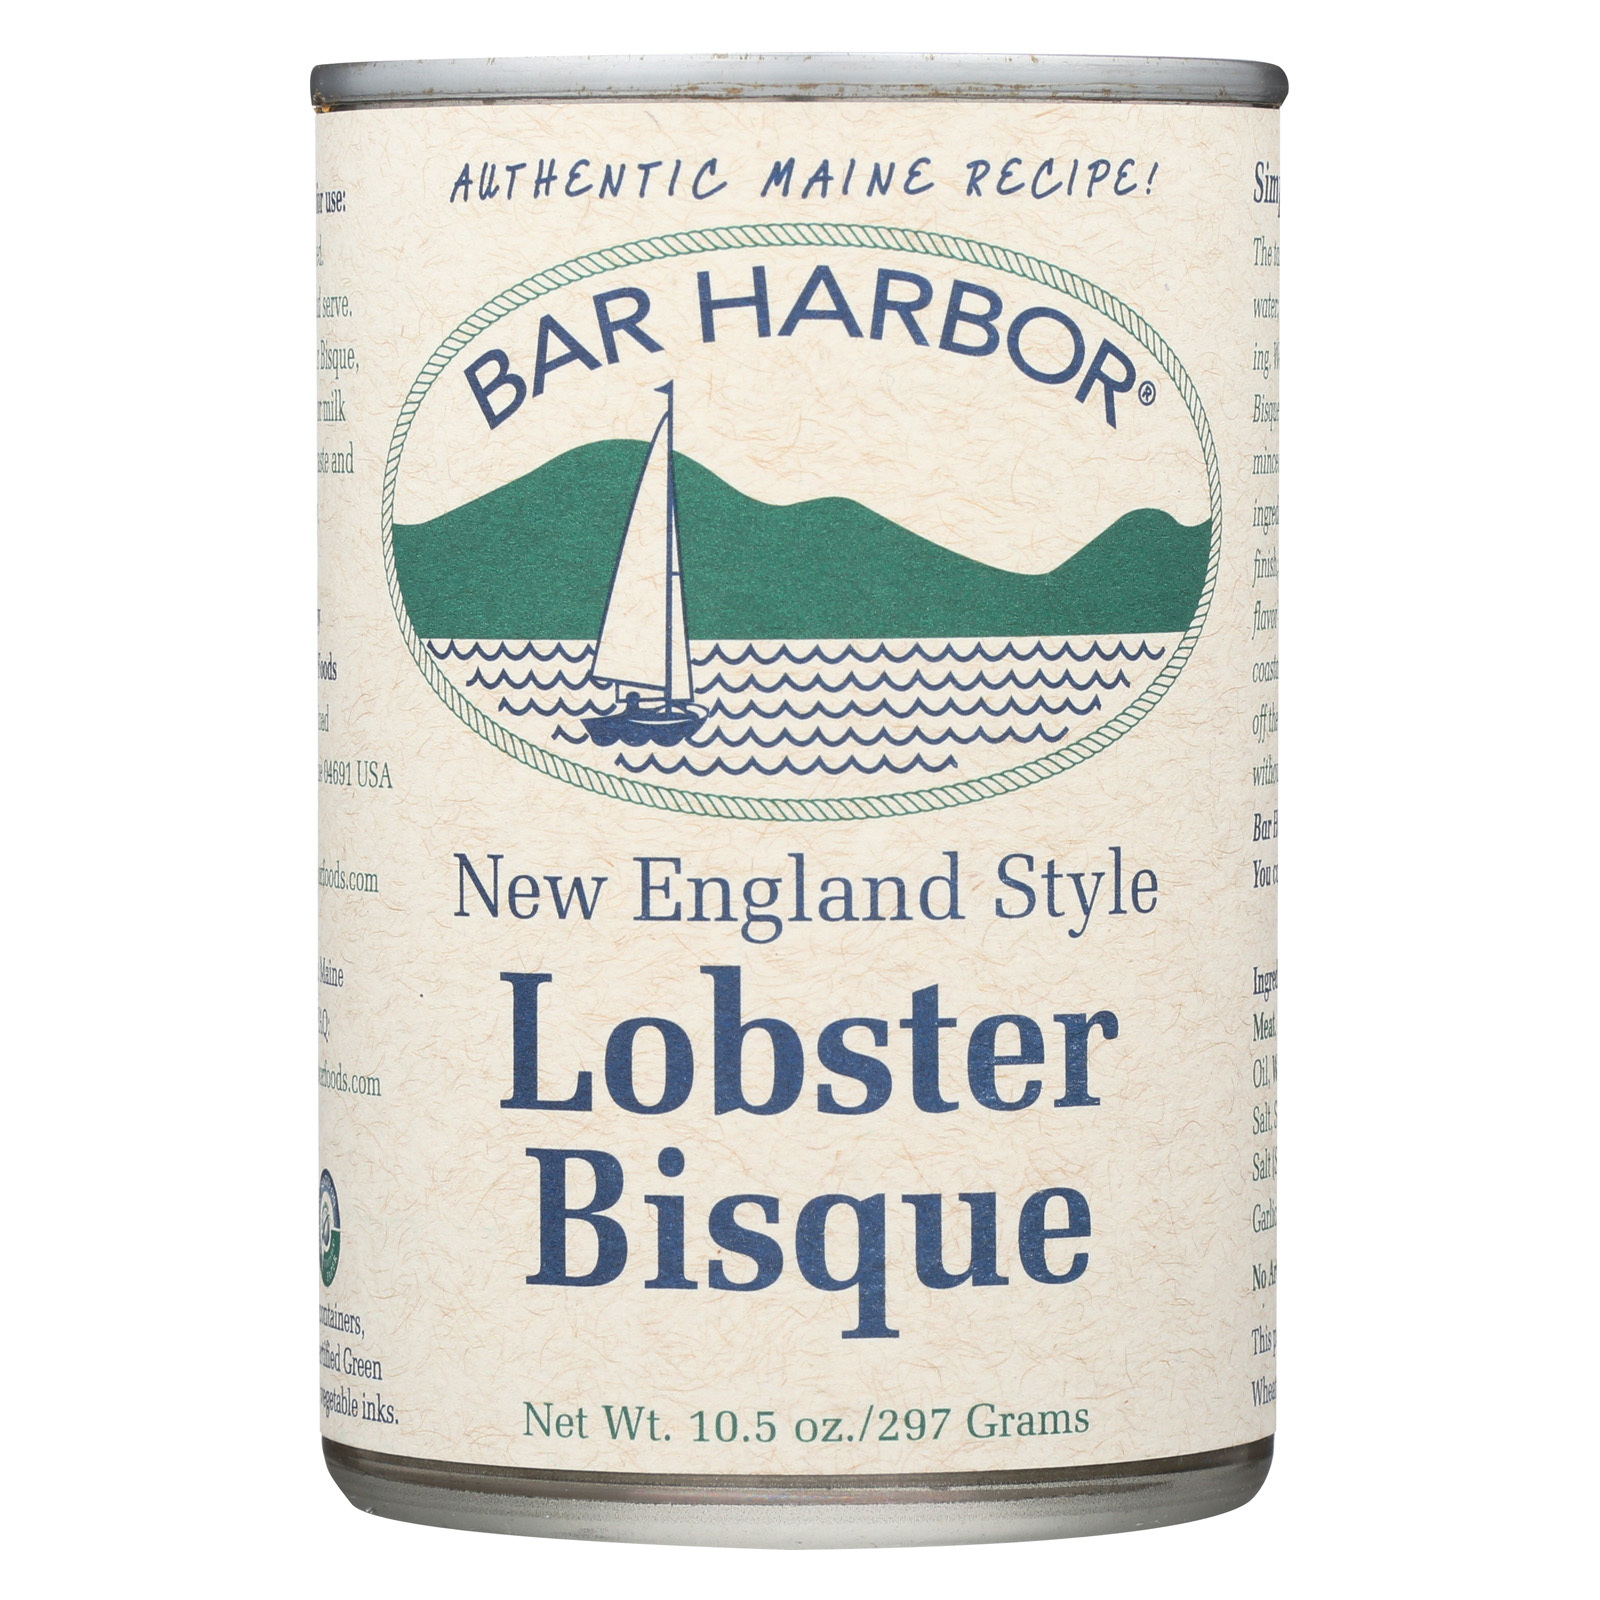 Bar Harbor New England Style Lobster Bisque - Case of 6 - 10.5 oz.